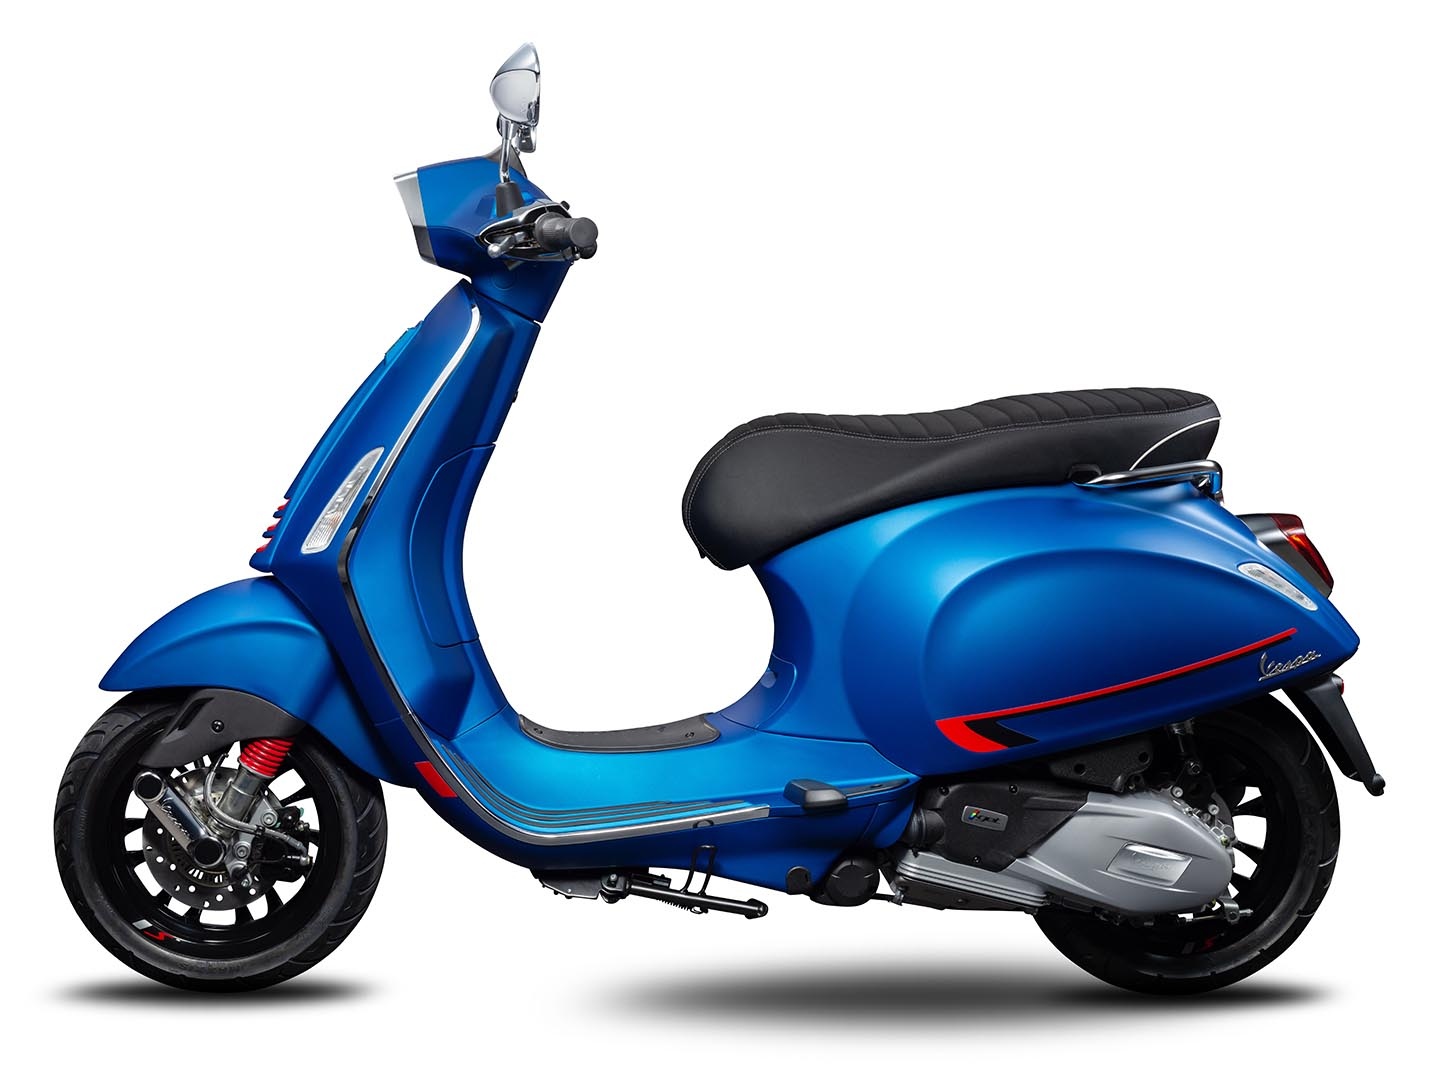 vespa-capture-one-catalog44652.jpg